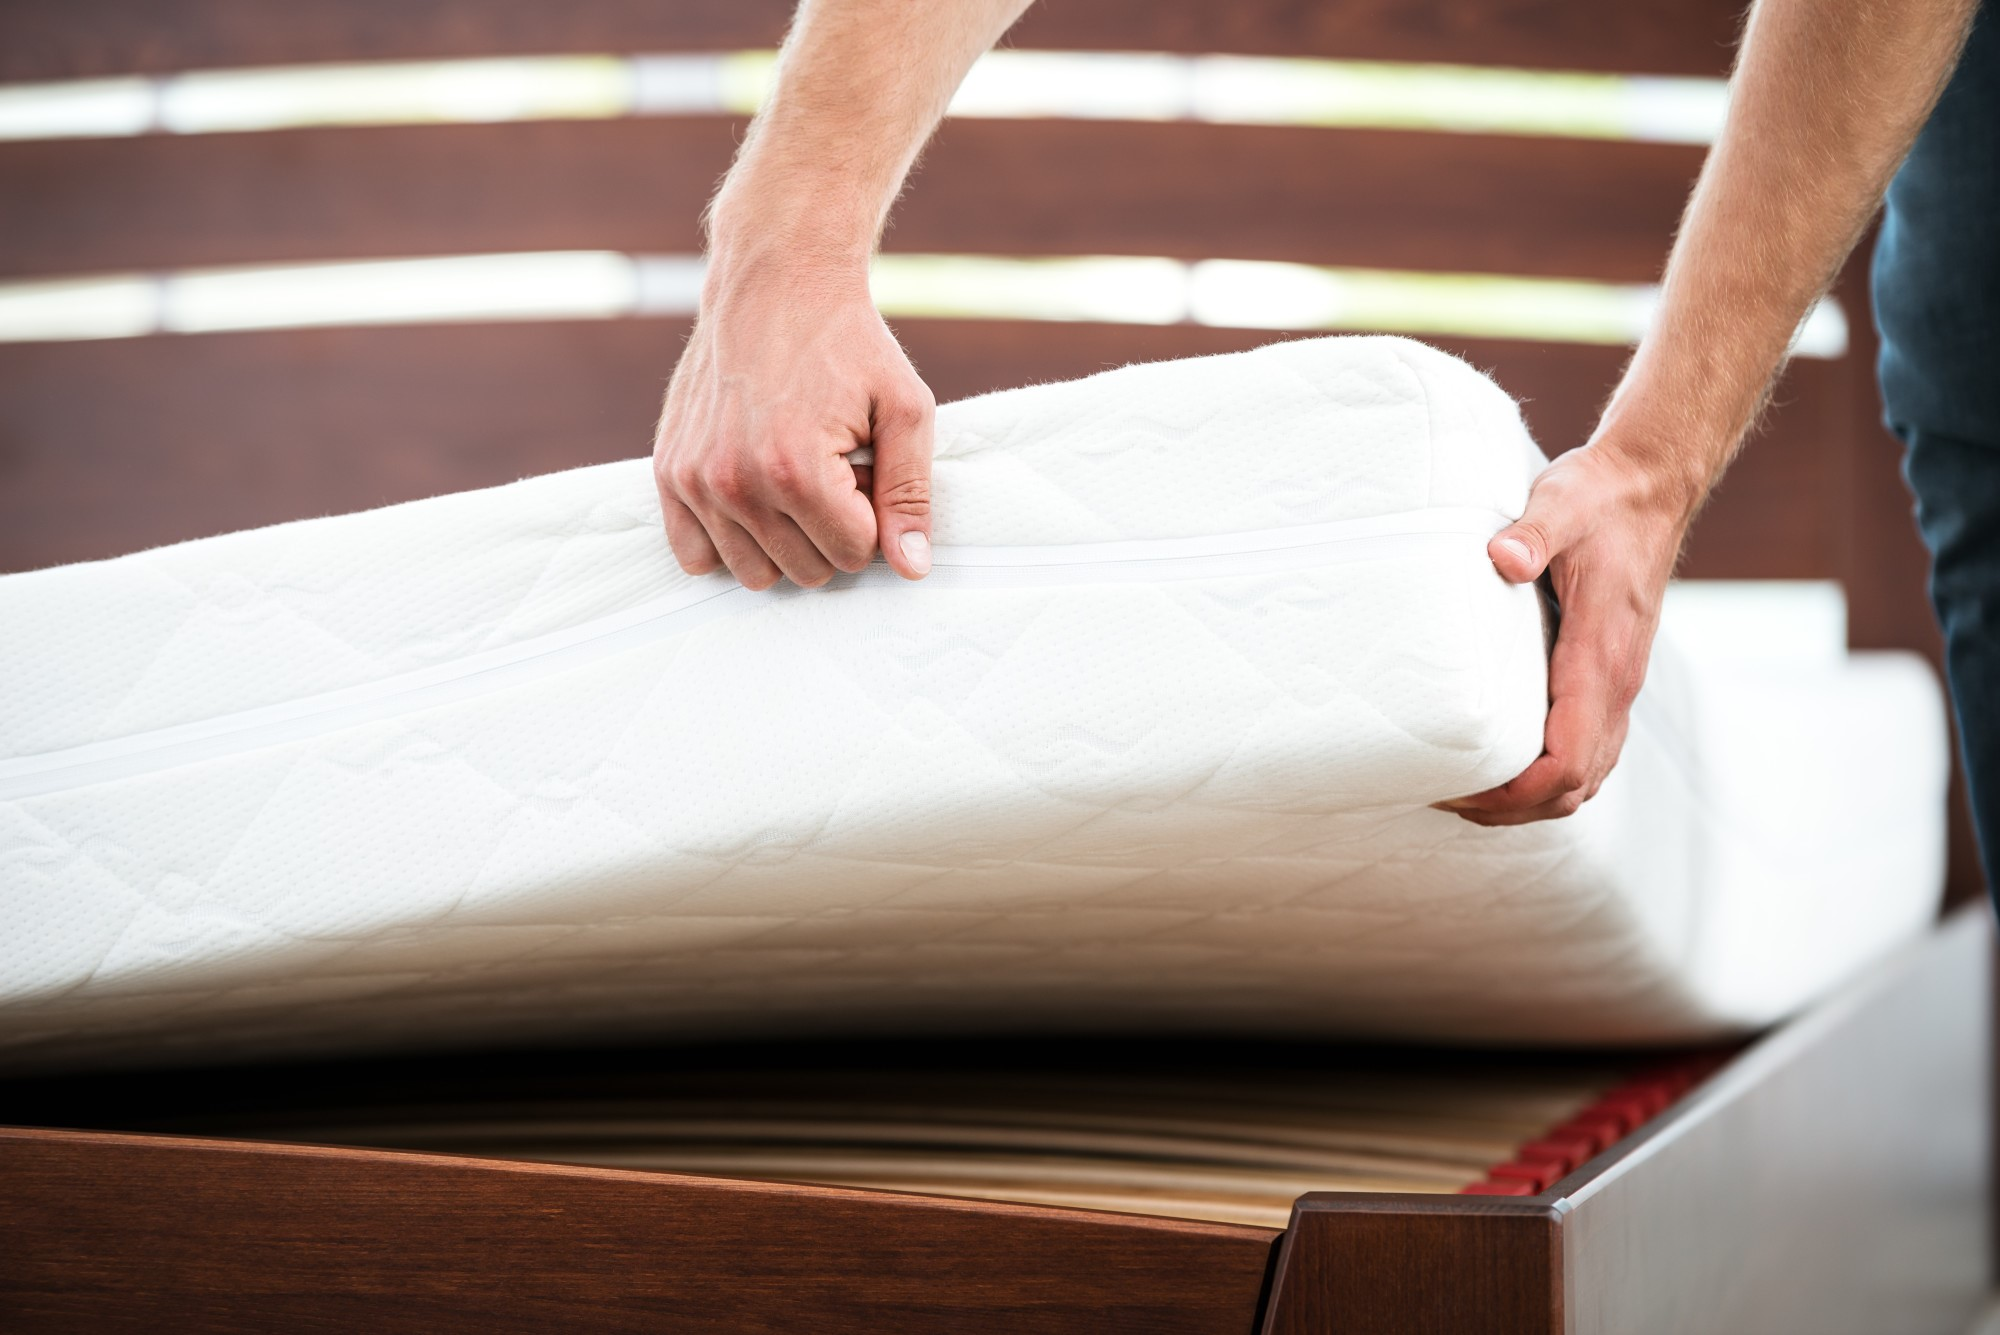 image - How to Sanitize a Mattress: The Complete Guide